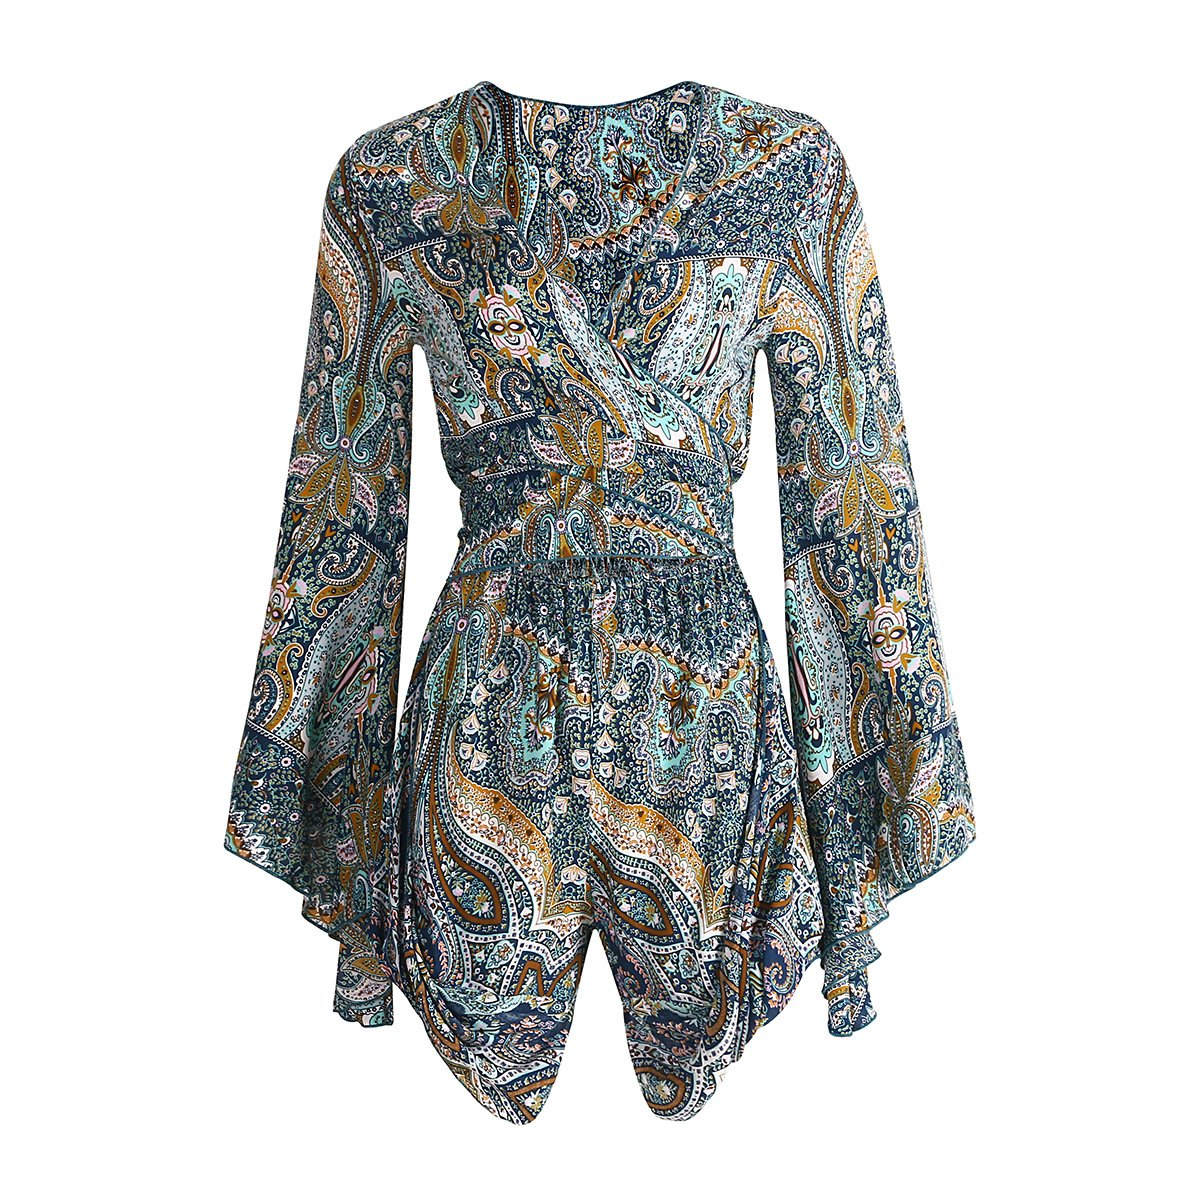 02447e0f35 Amazon.com  Wicky LS Women s Sexy V Neck Floral Prints Romper Jumpsuit   Clothing